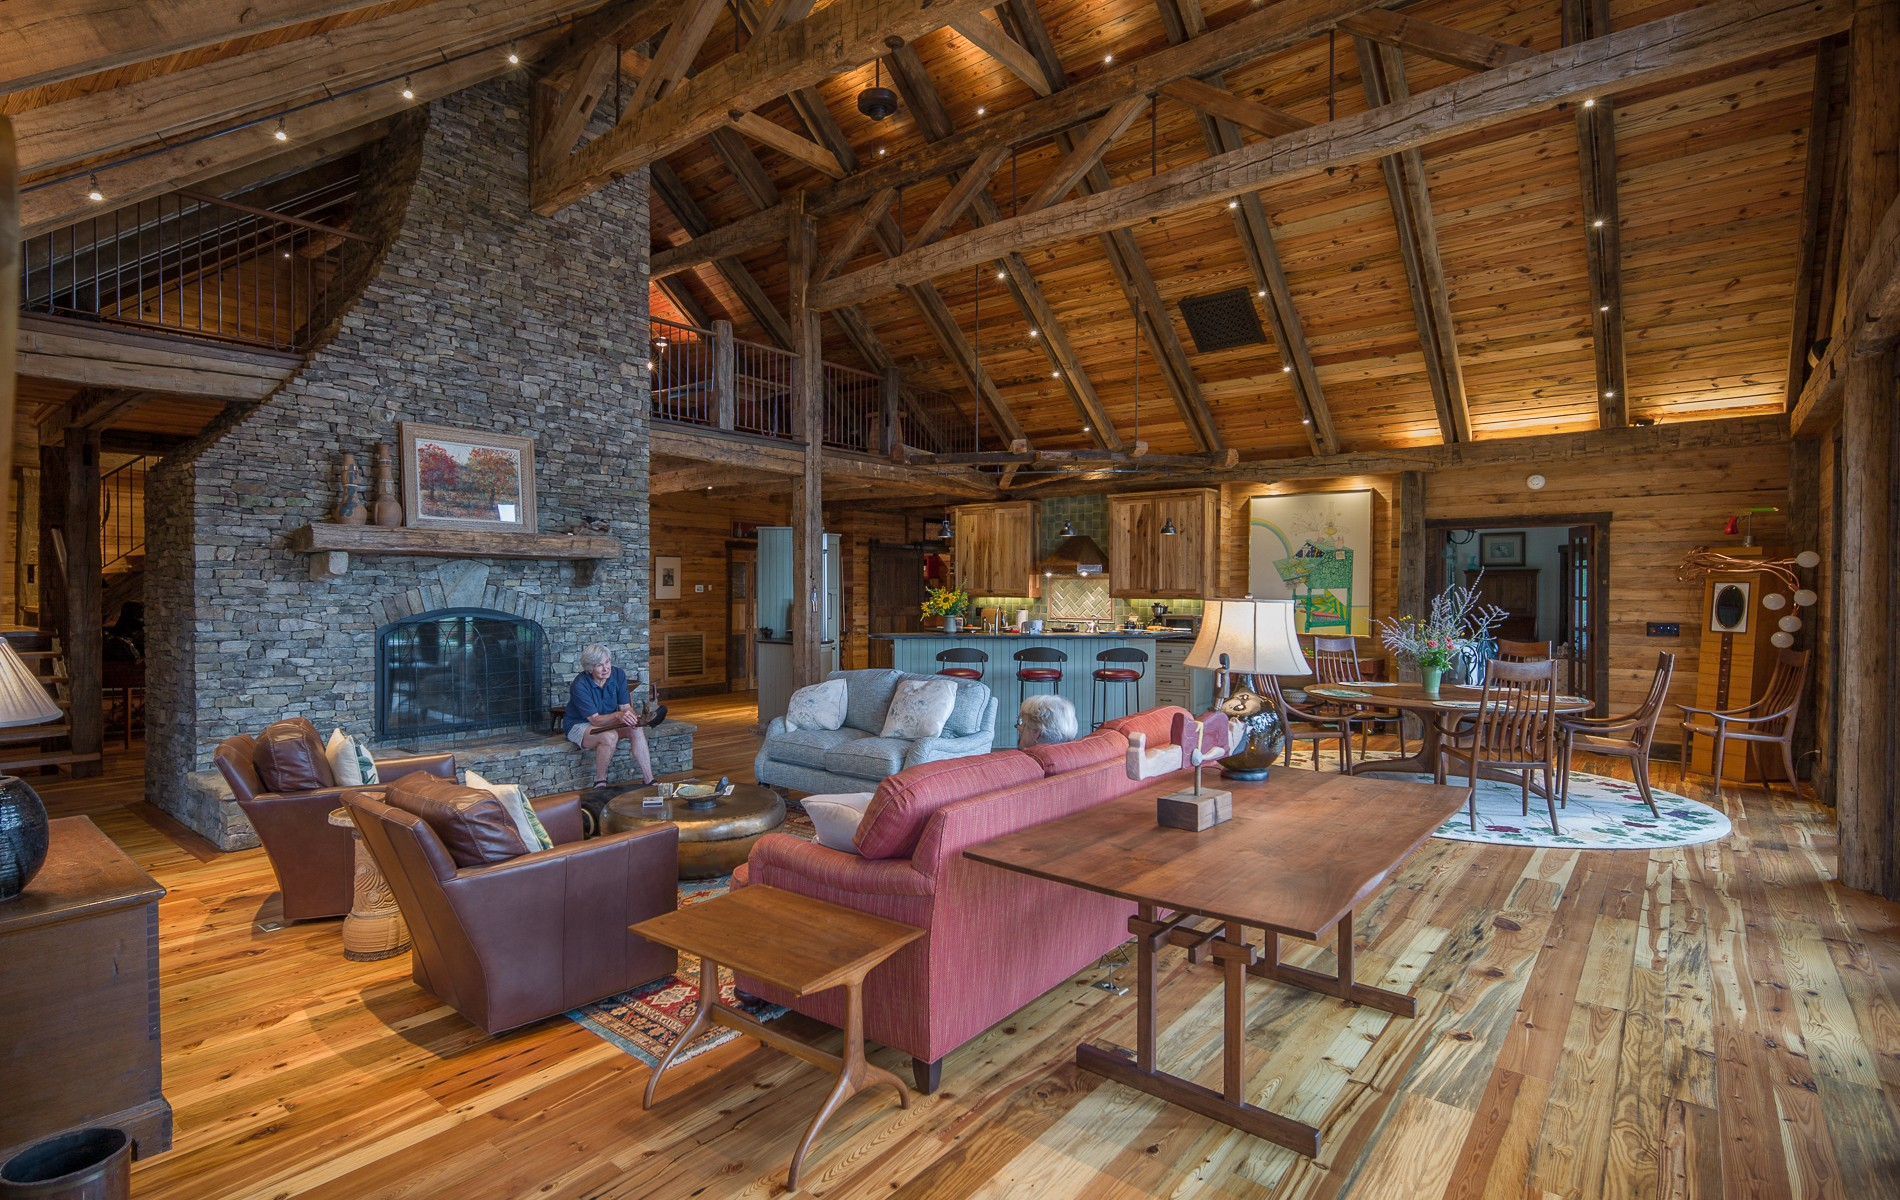 reclaimed wood timber frame great room on New River in Virginia